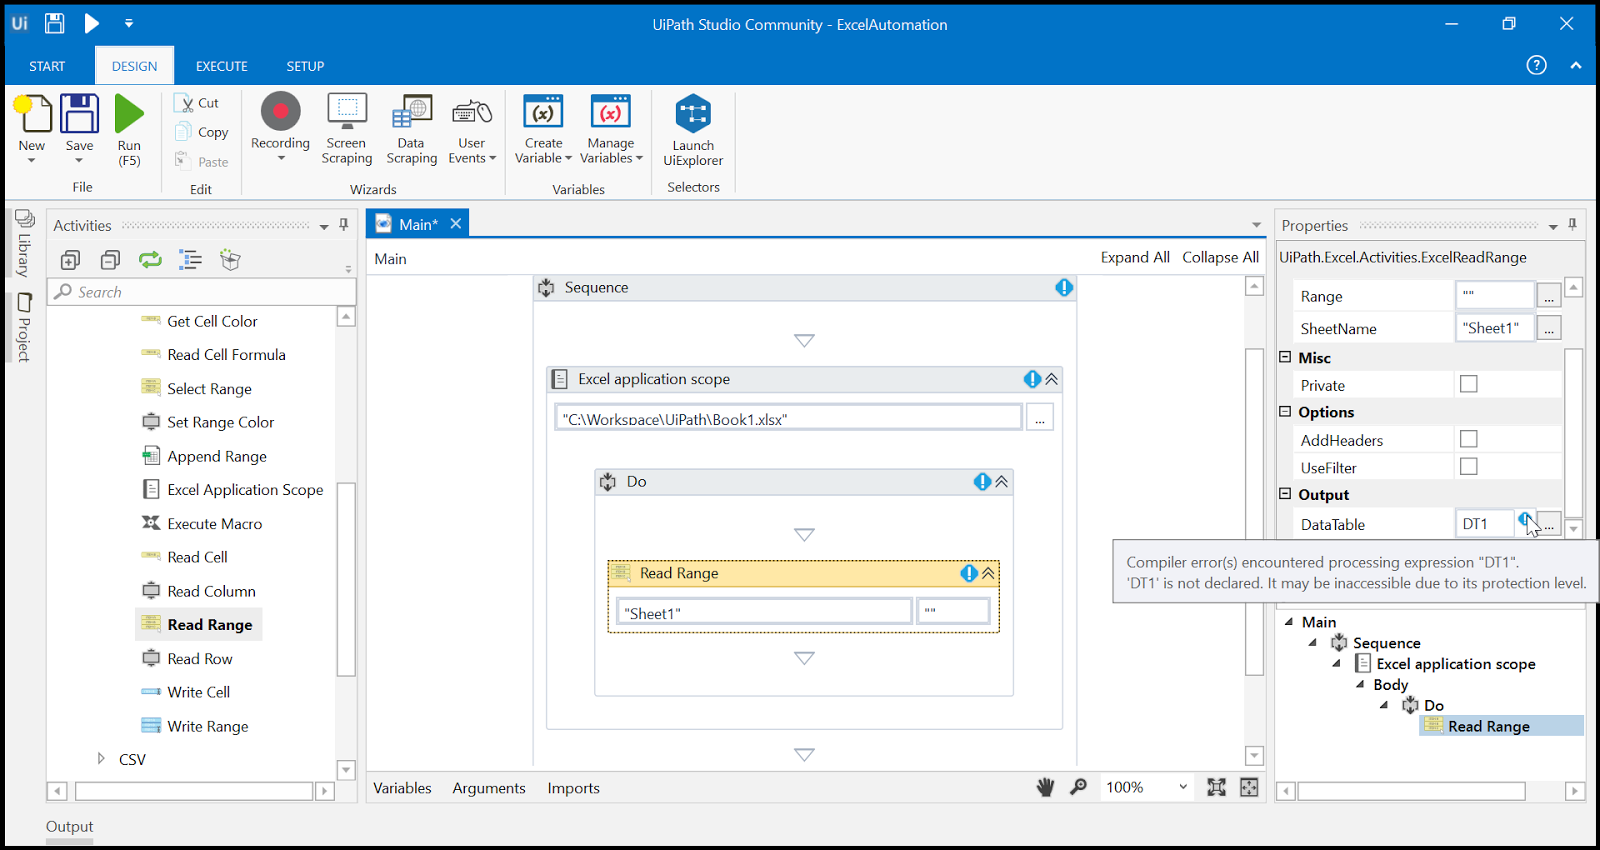 Robotic Process Automation Excel Automation In Uipath